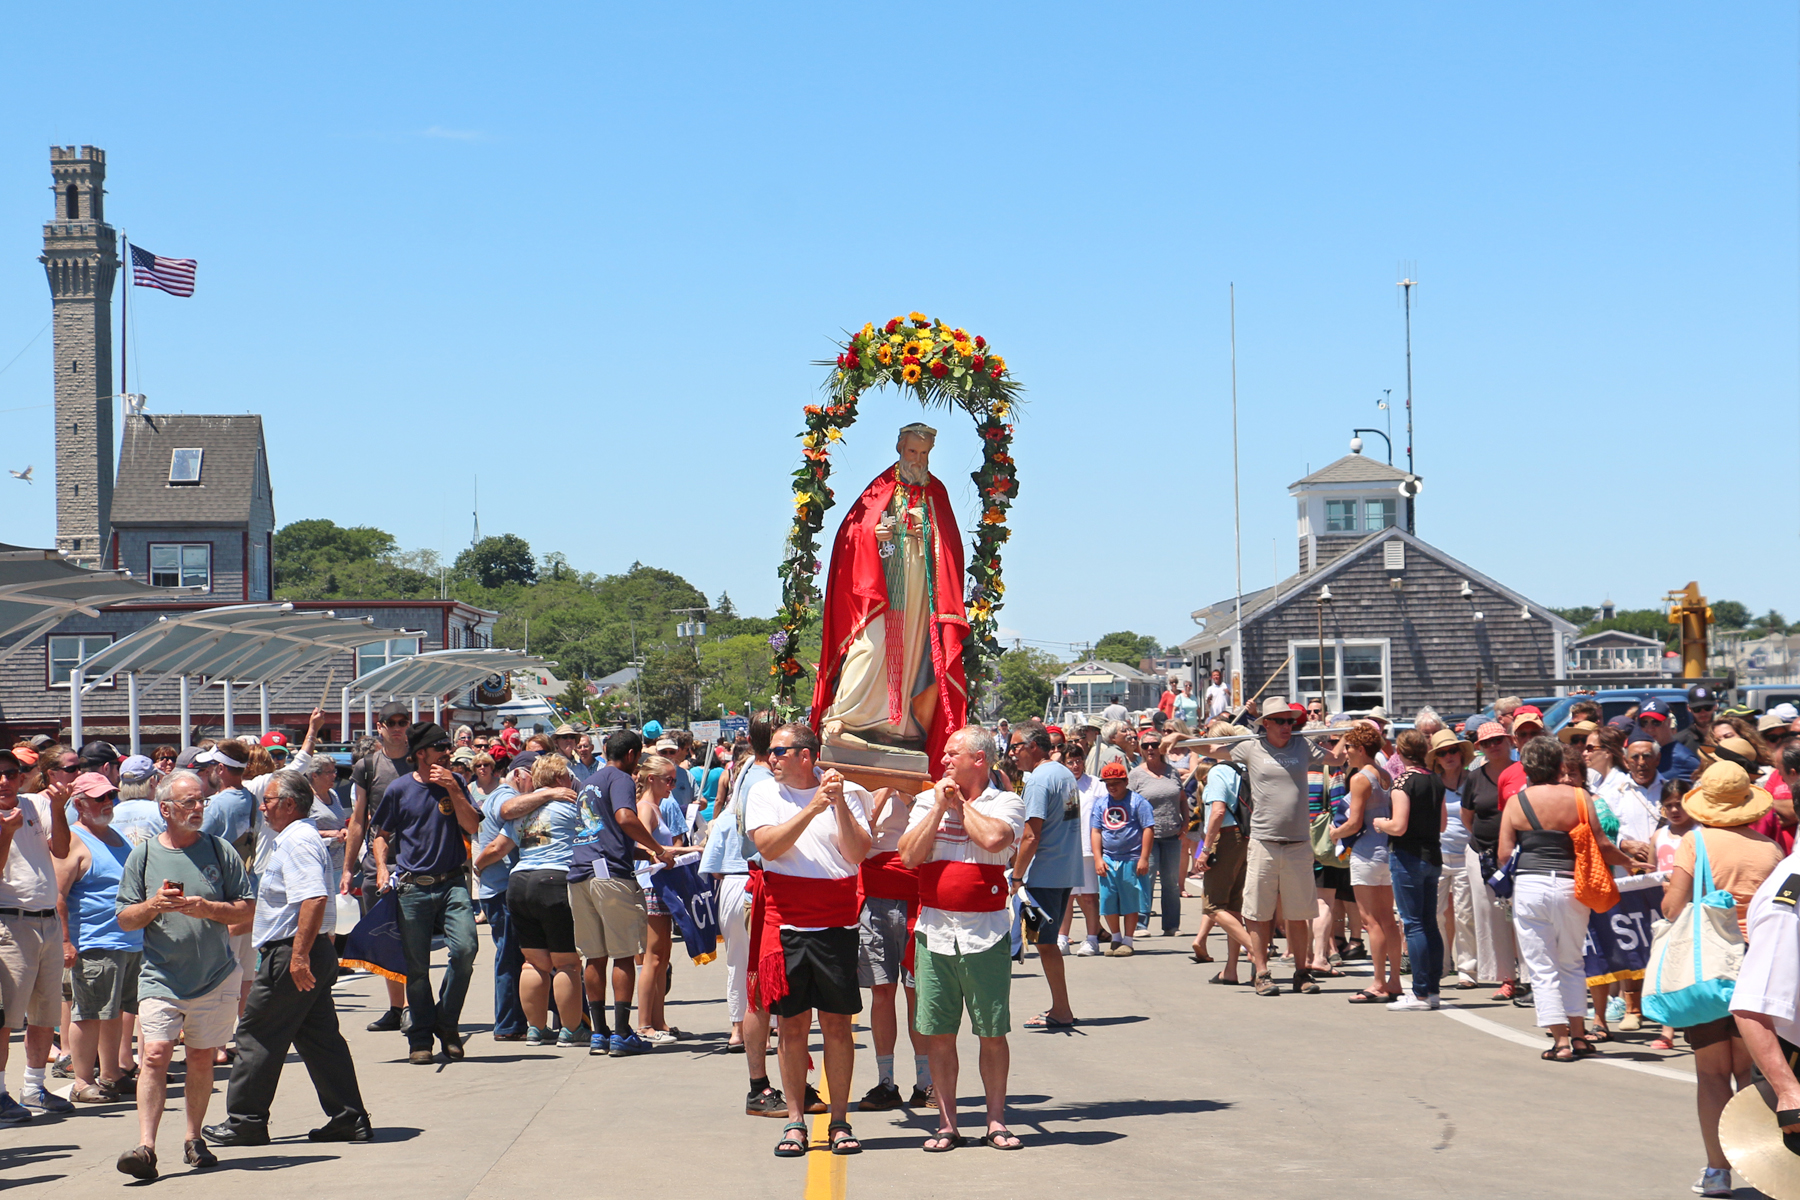 A statue of Saint Peter sporting the colors of the Portuguese flag is carried onto MacMillian Pier. In the background to the left stands the Pilgrim Monument, built in 1910 to commemorate the 1620 signing of the Mayflower Compact in Provincetown.